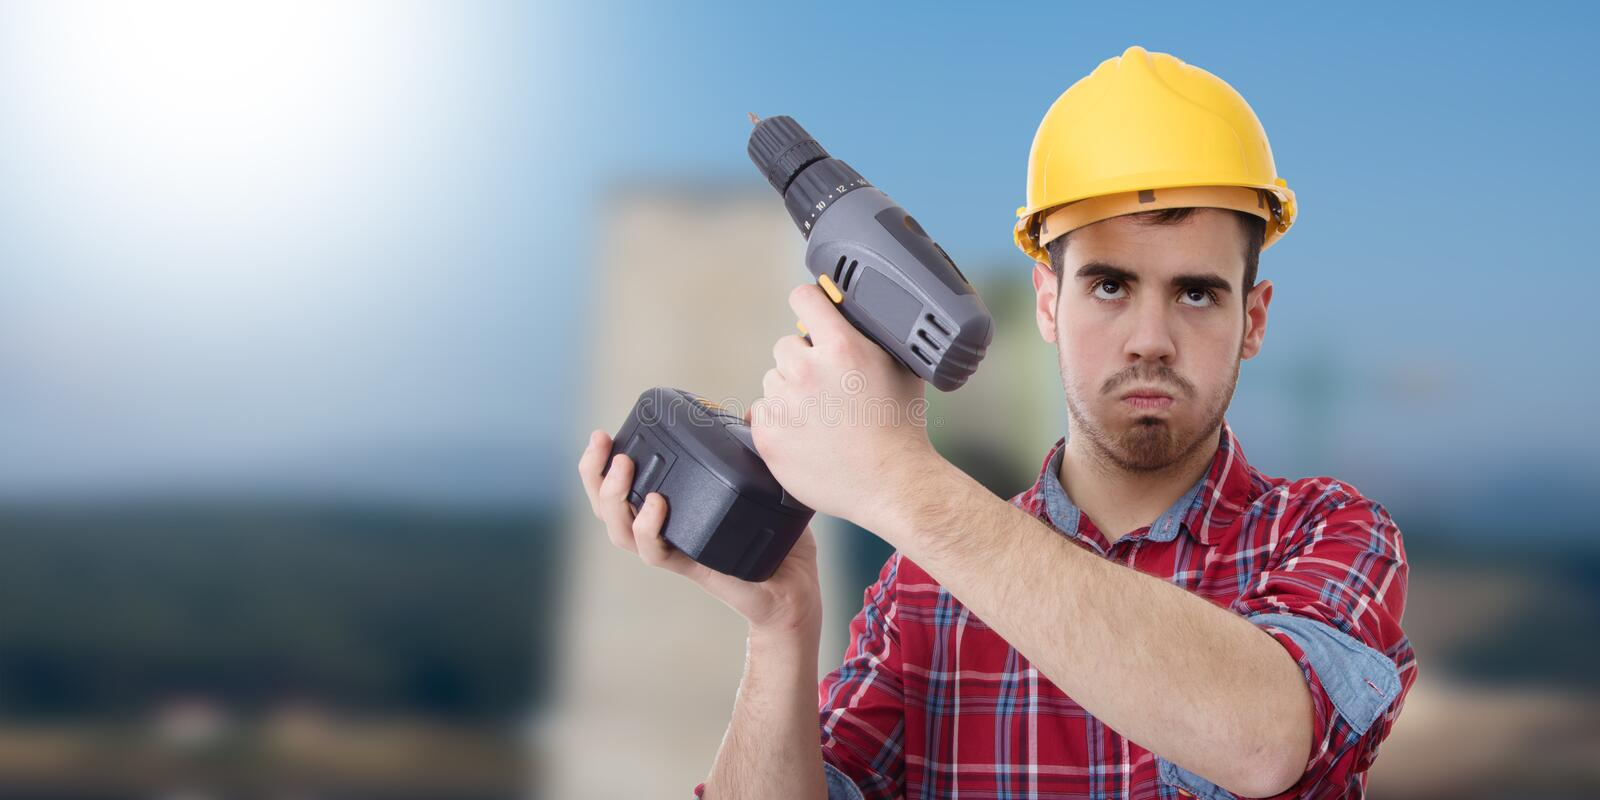 Constructor with drill. Renovations, repairs and bricolage royalty free stock photo